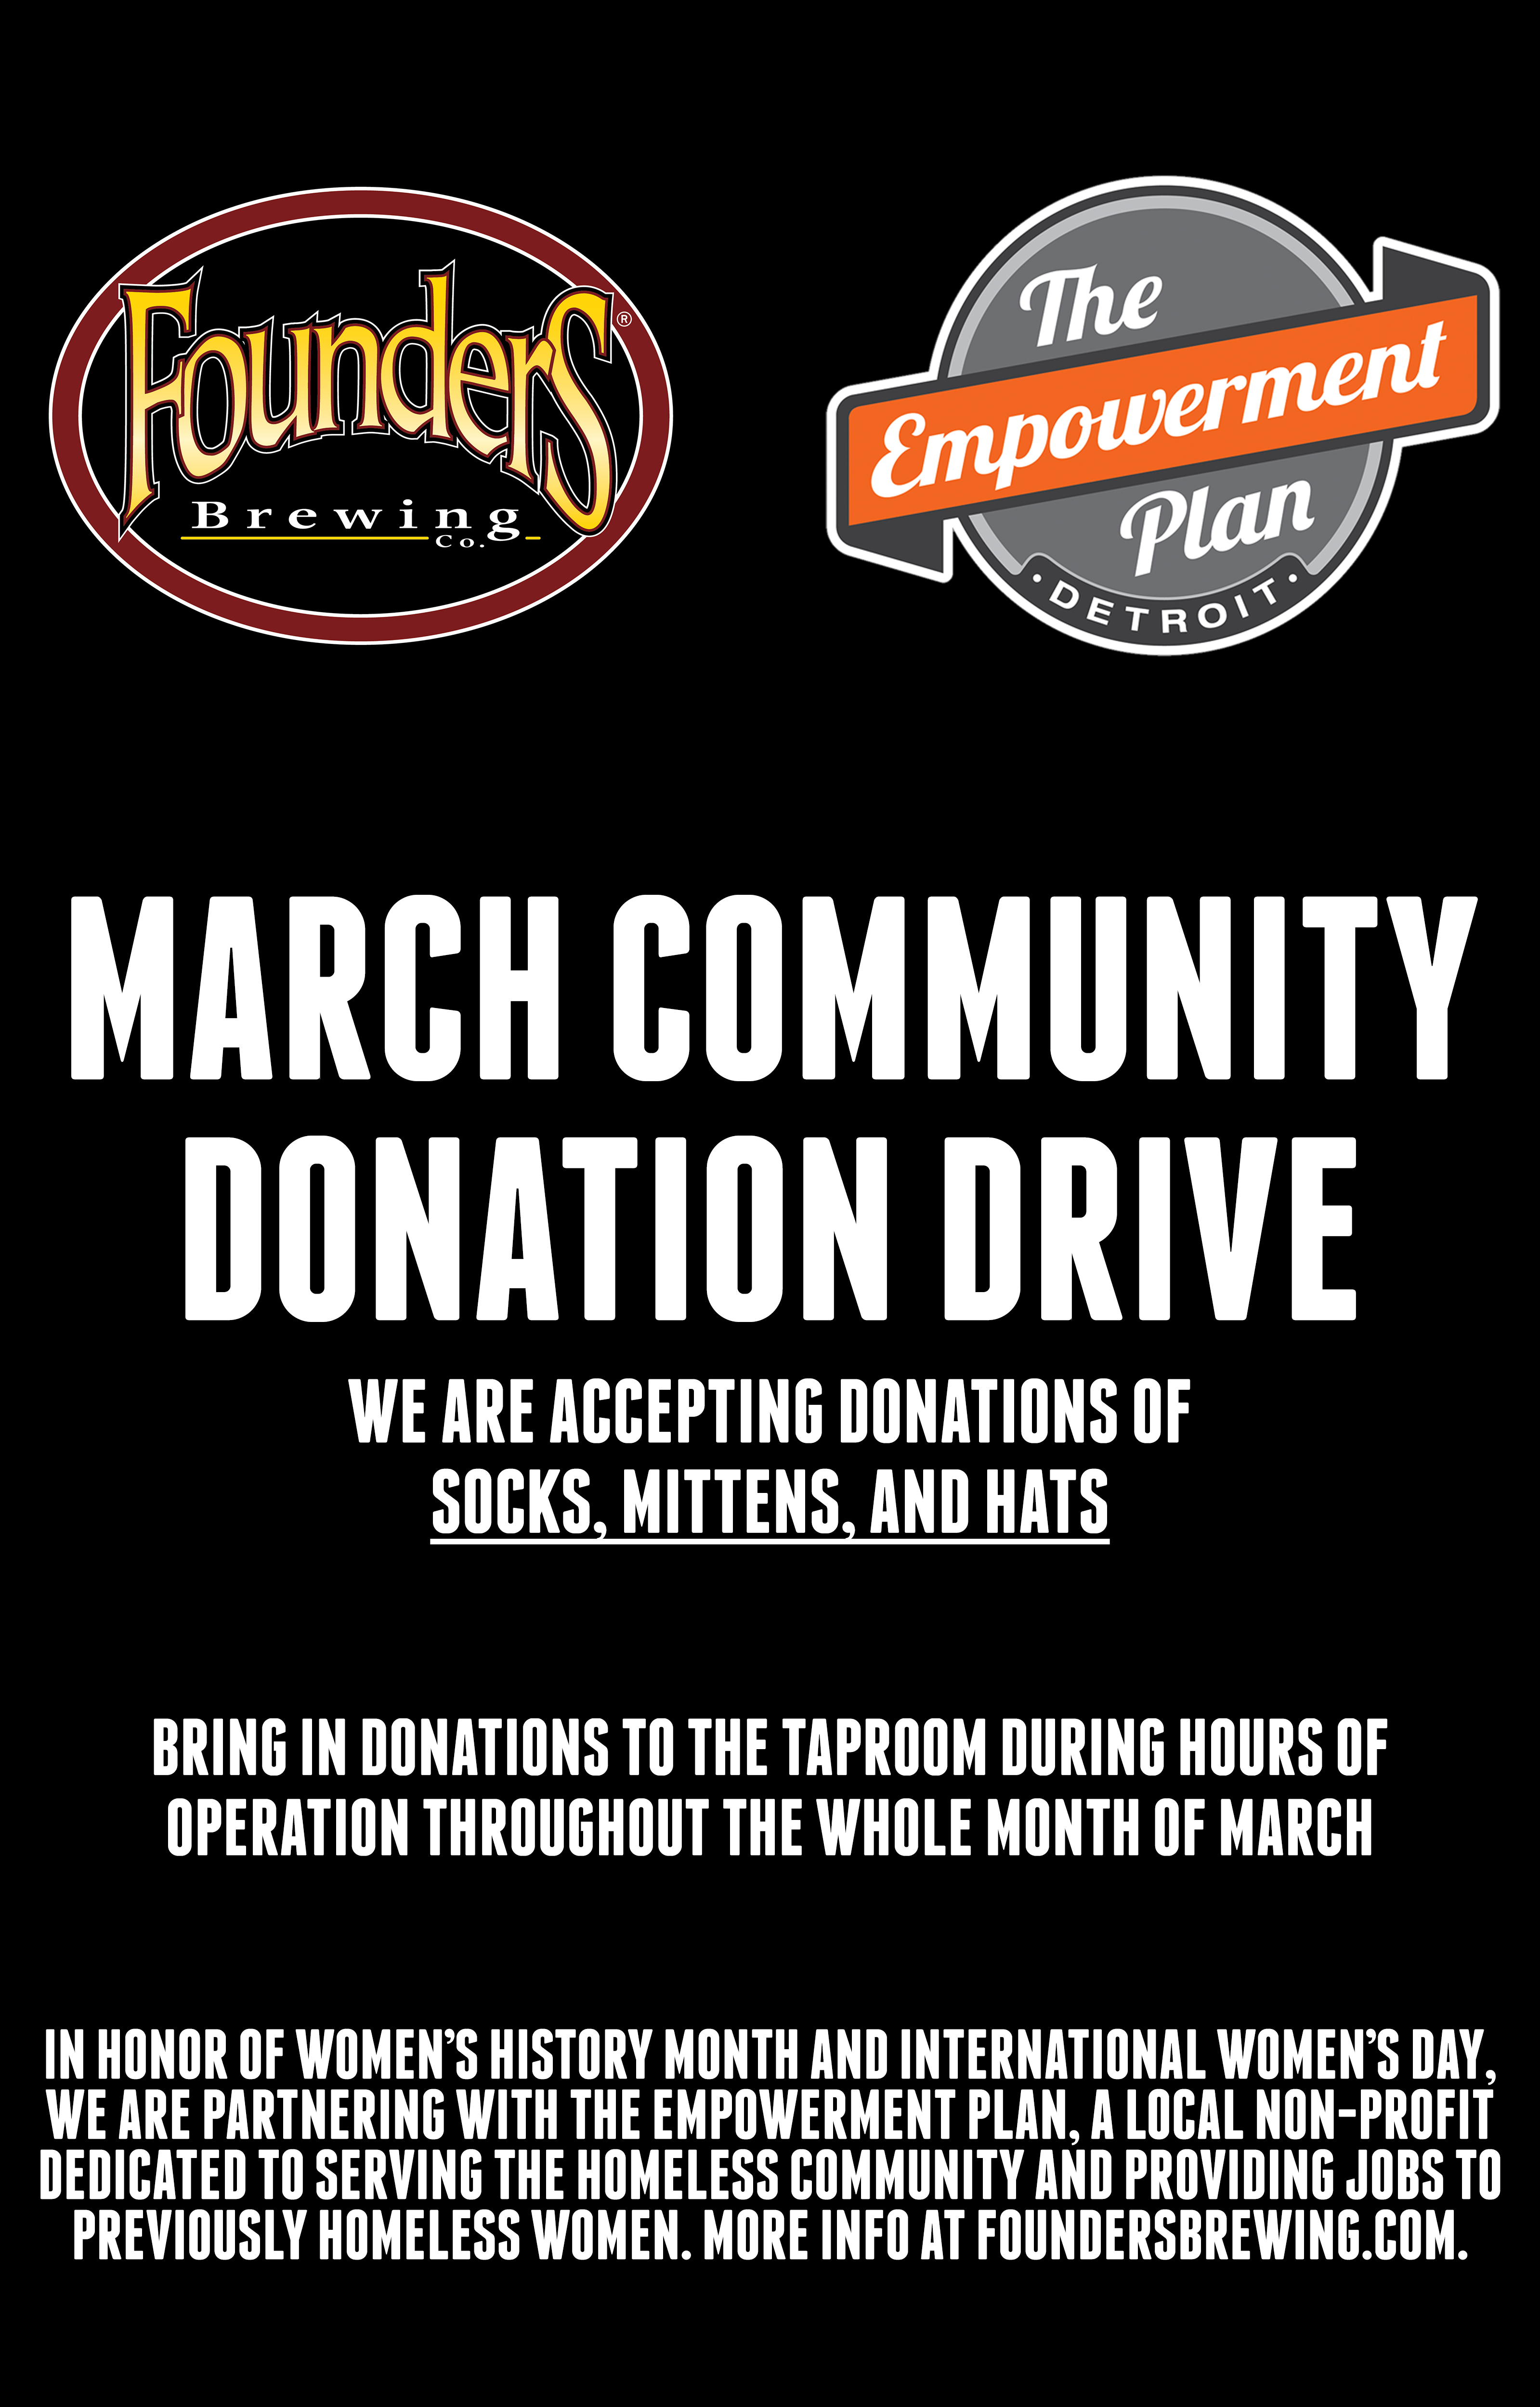 Founders March Community Donation Drive poster